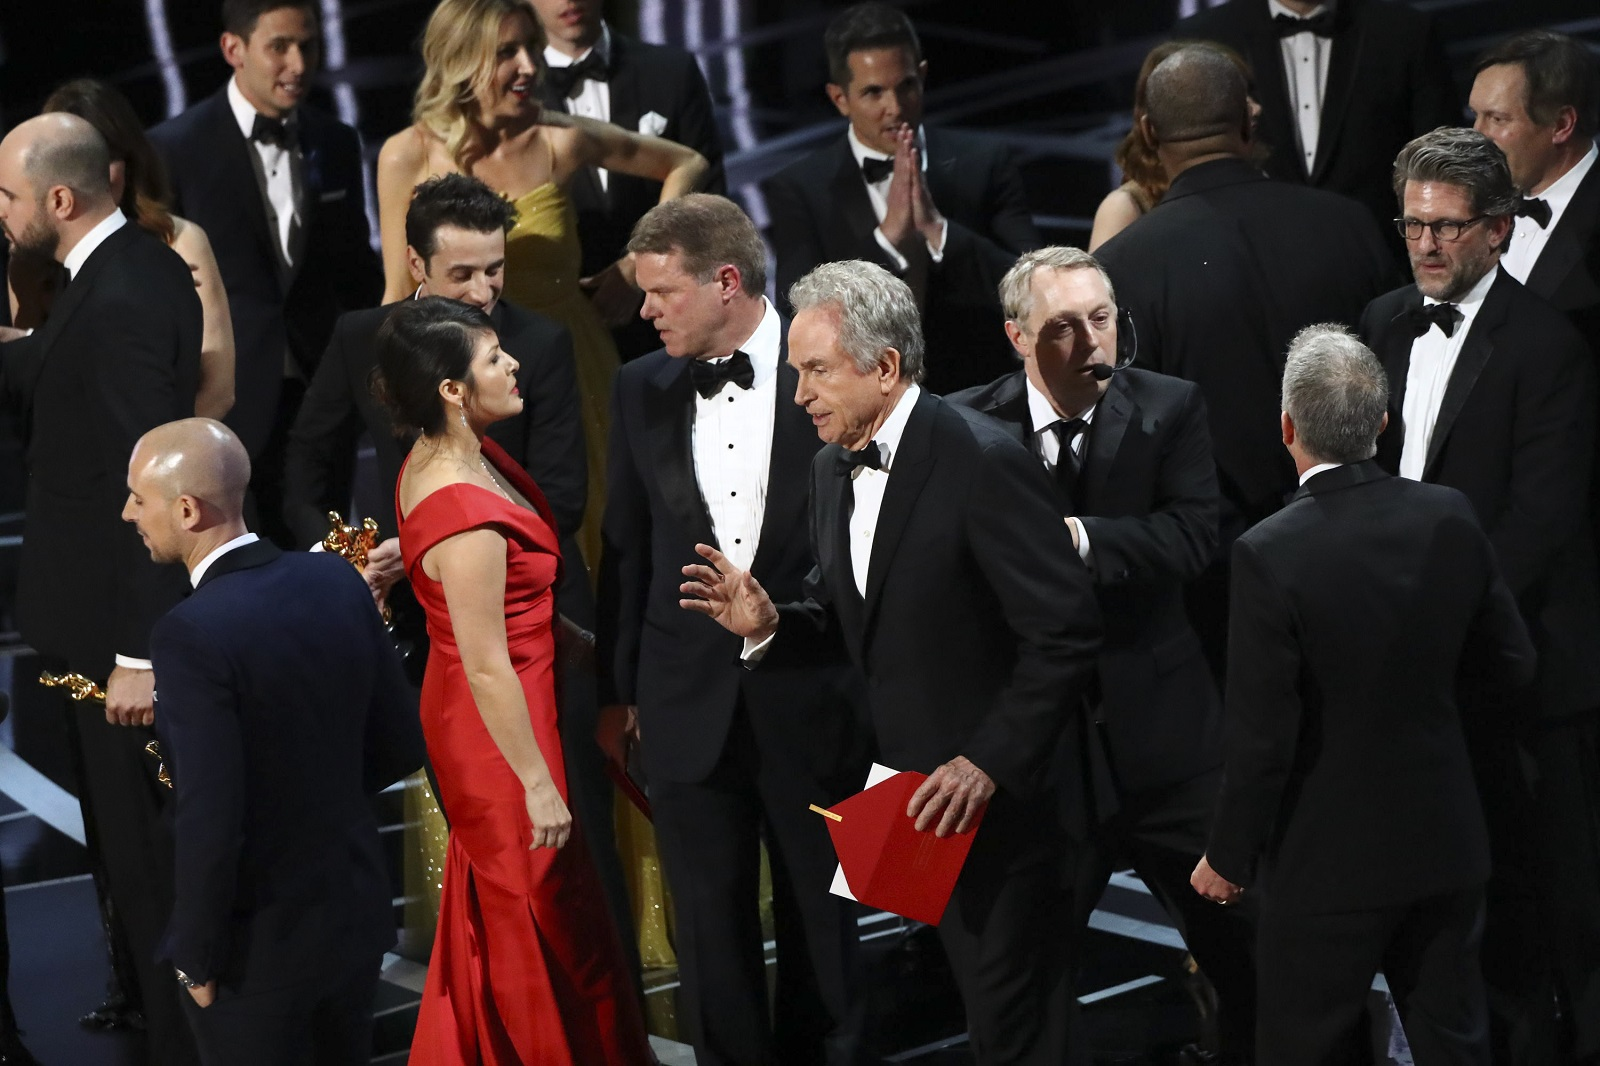 Warren Beatty after announcing the incorrect winner of the Oscar for Best Picture during the 89th Academy Awards at the Dolby Theatre in Los Angeles. Beatty and Faye Dunaway announced 'La La Land,' but 'Moonlight' was the correct winner. (Patrick T. Fallon/The New York Times)